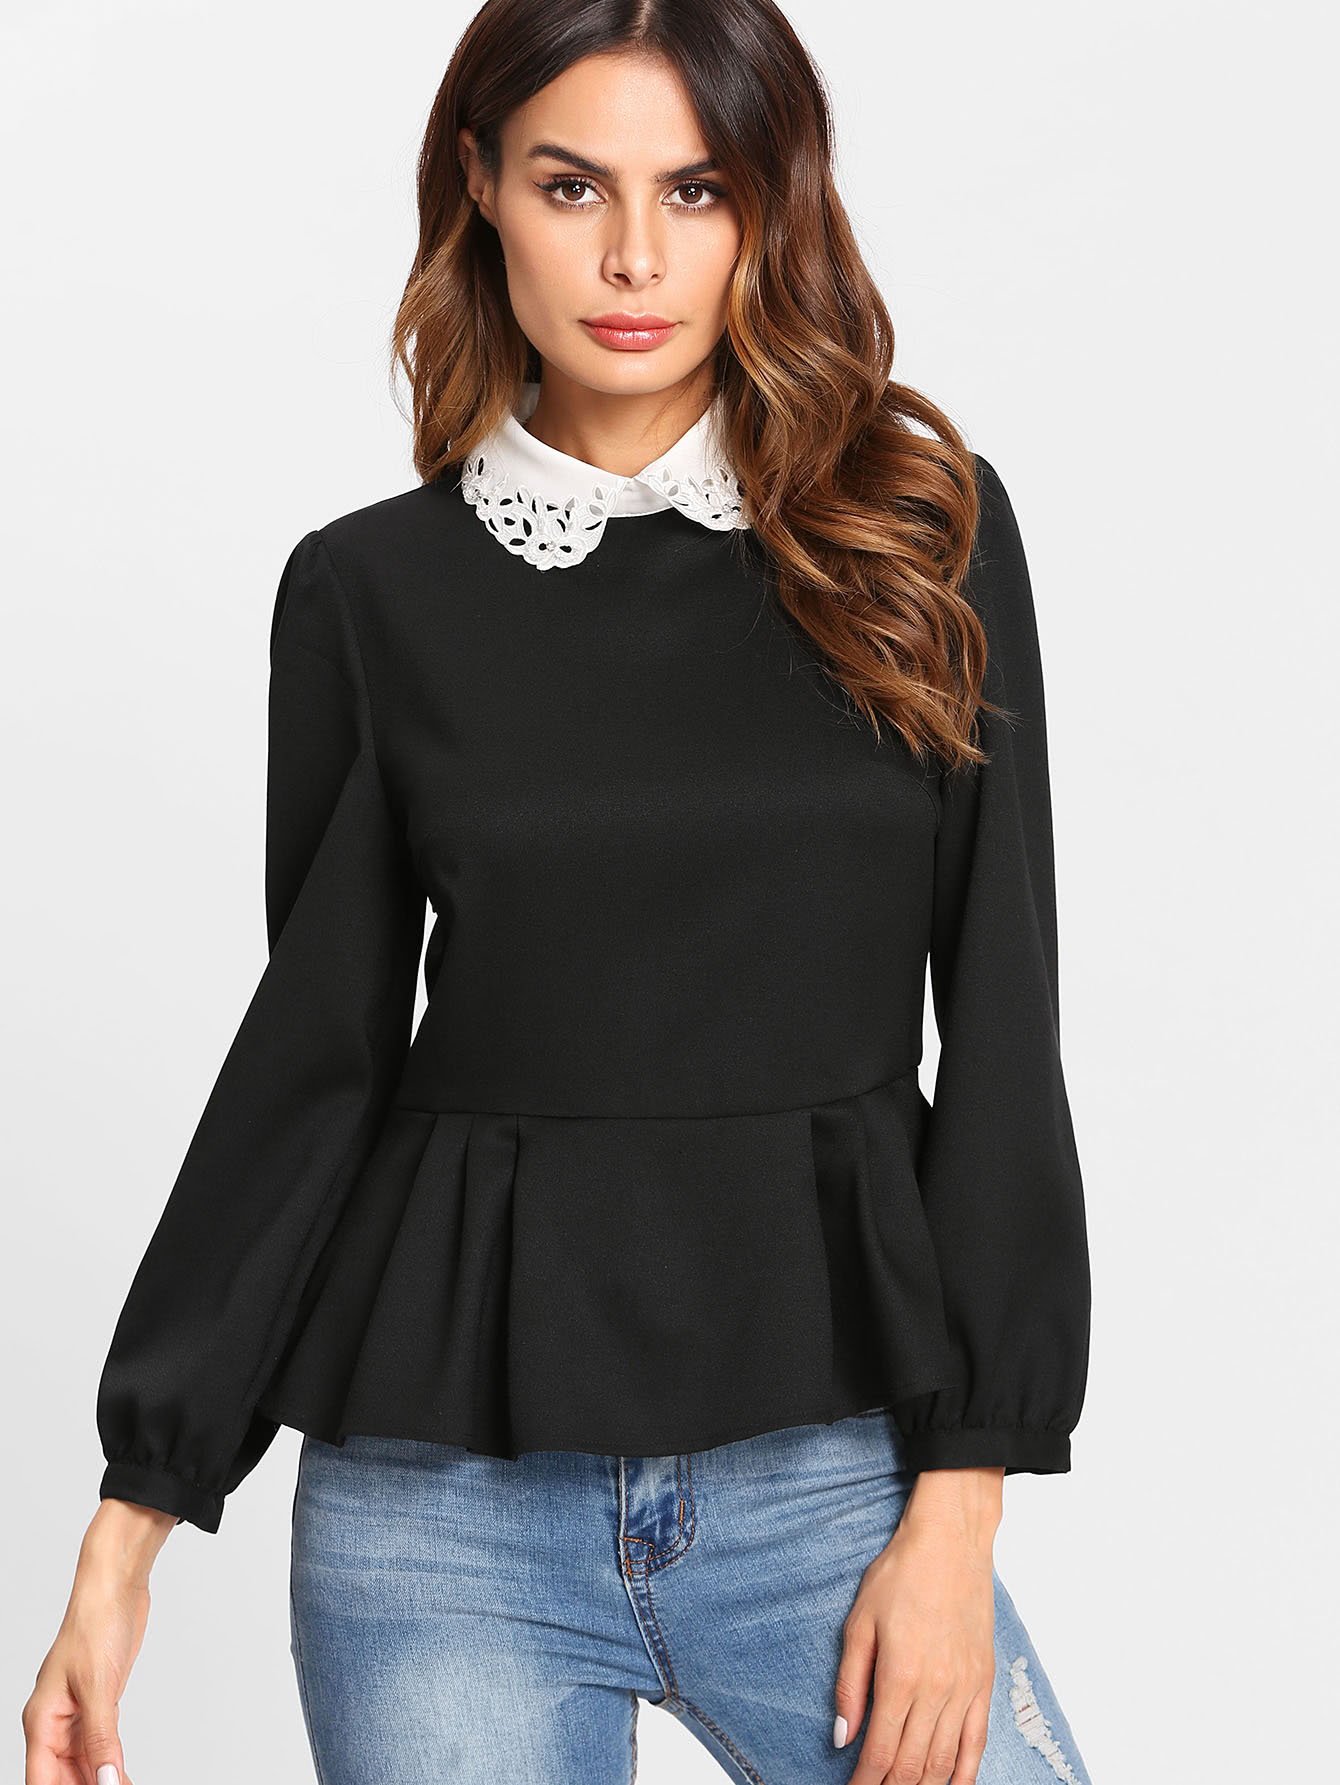 Peplum Top With Contrast Eyelet Embroidered Collar